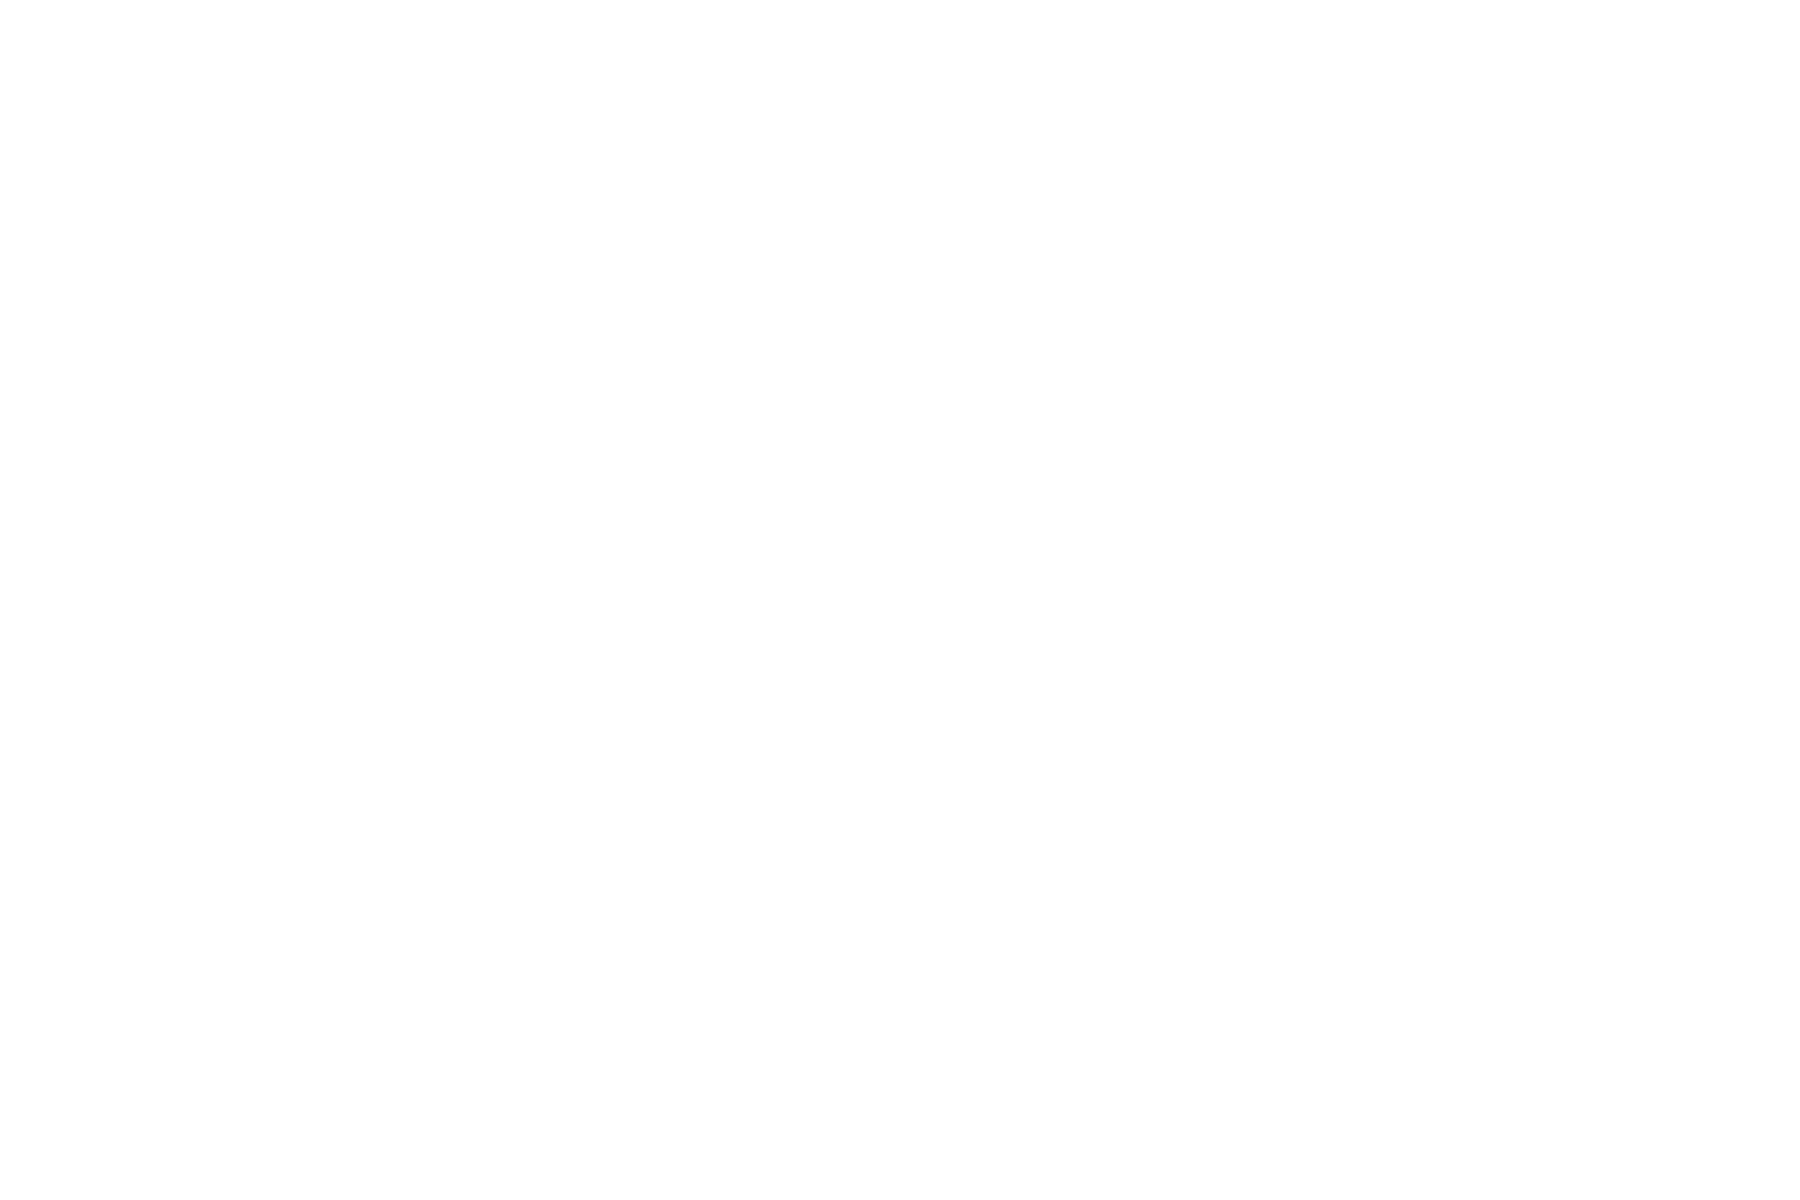 Shane McDonald Photography